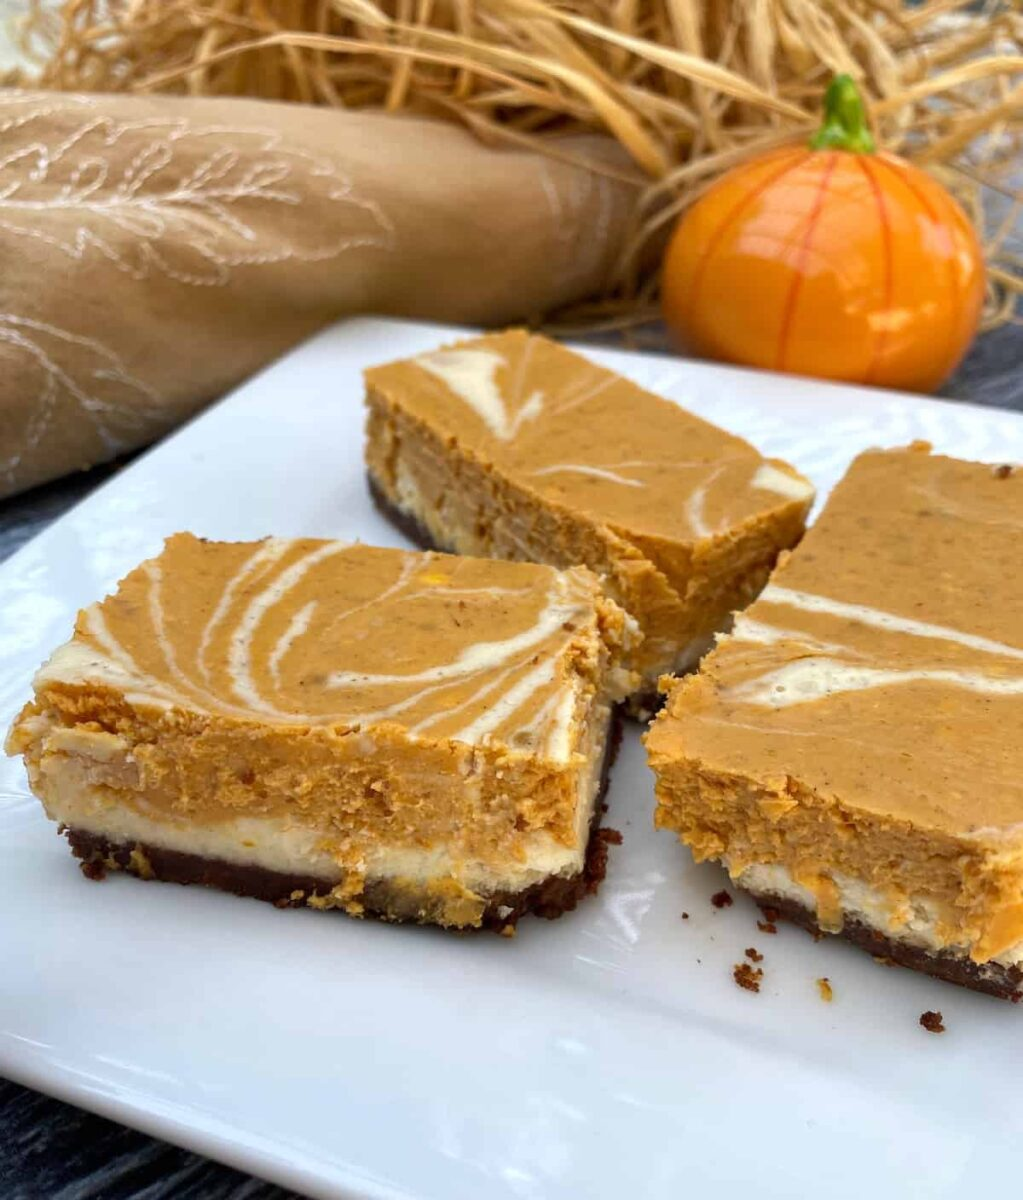 Three pumpkin cheesecake bars on a plate with straw and a miniature pumpkin ornament in the background.